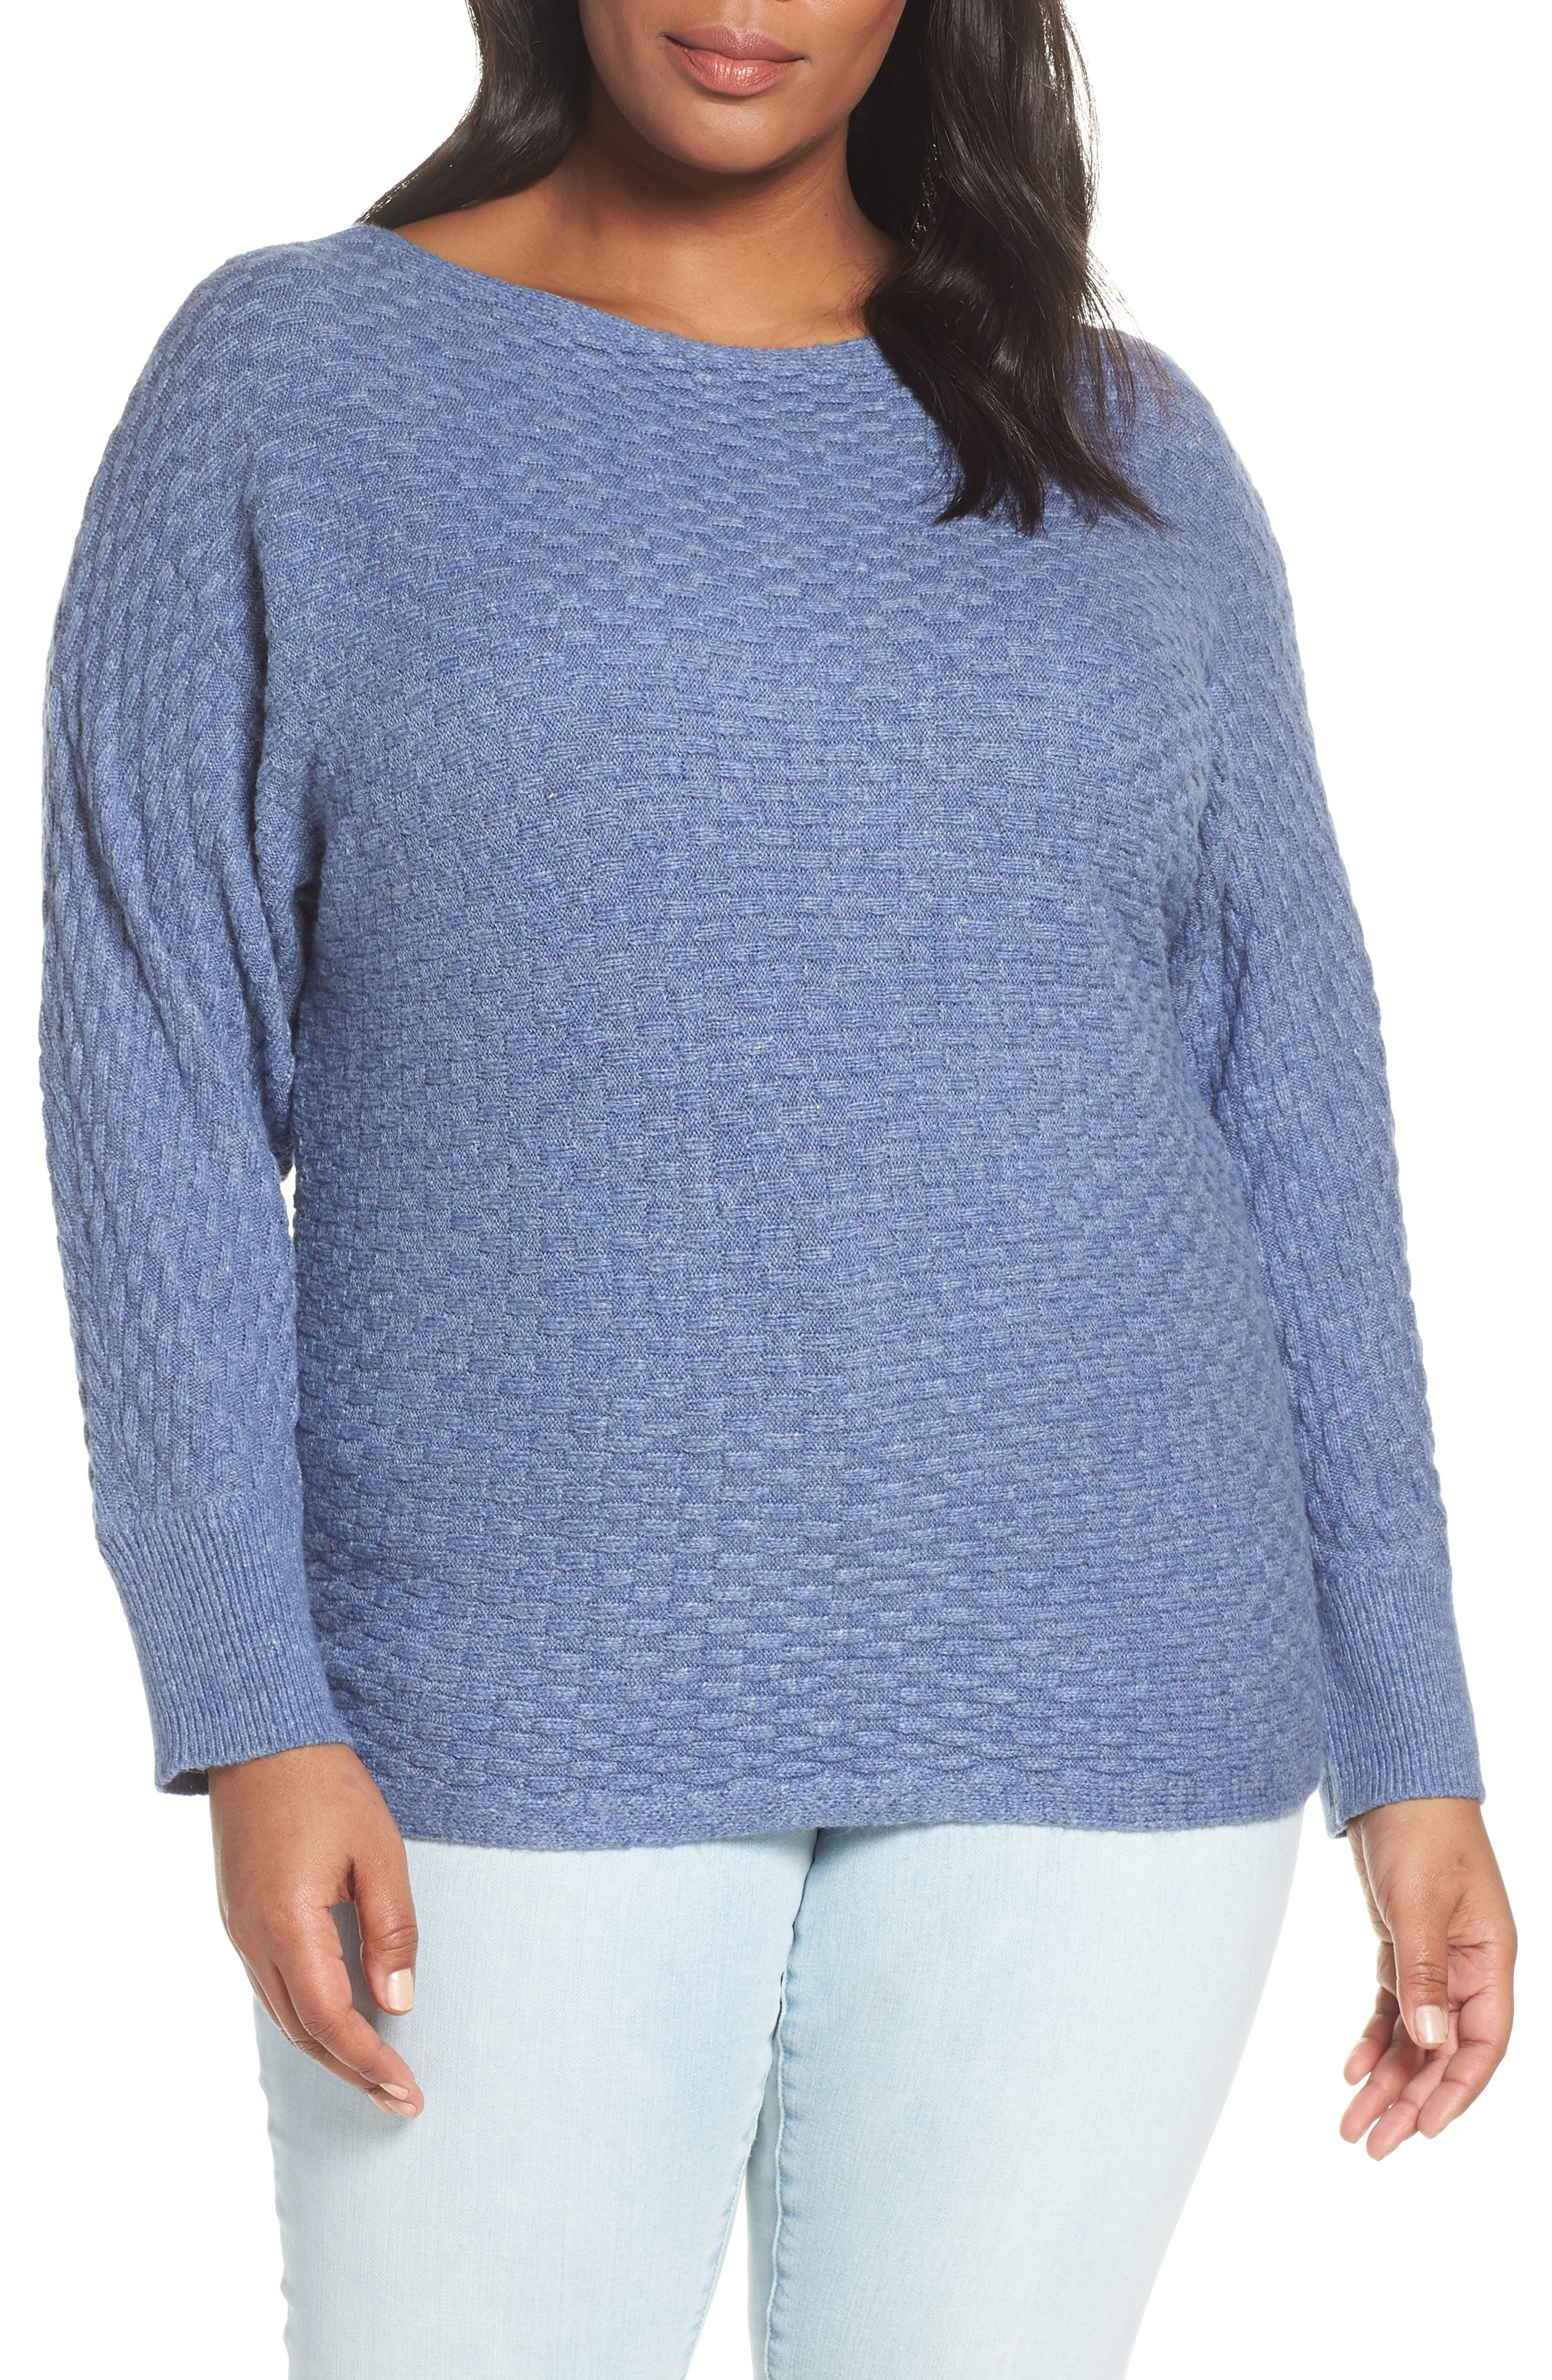 Vince Nordstrom Women's Sweaters Women's Vince Camuto Hq8gvw